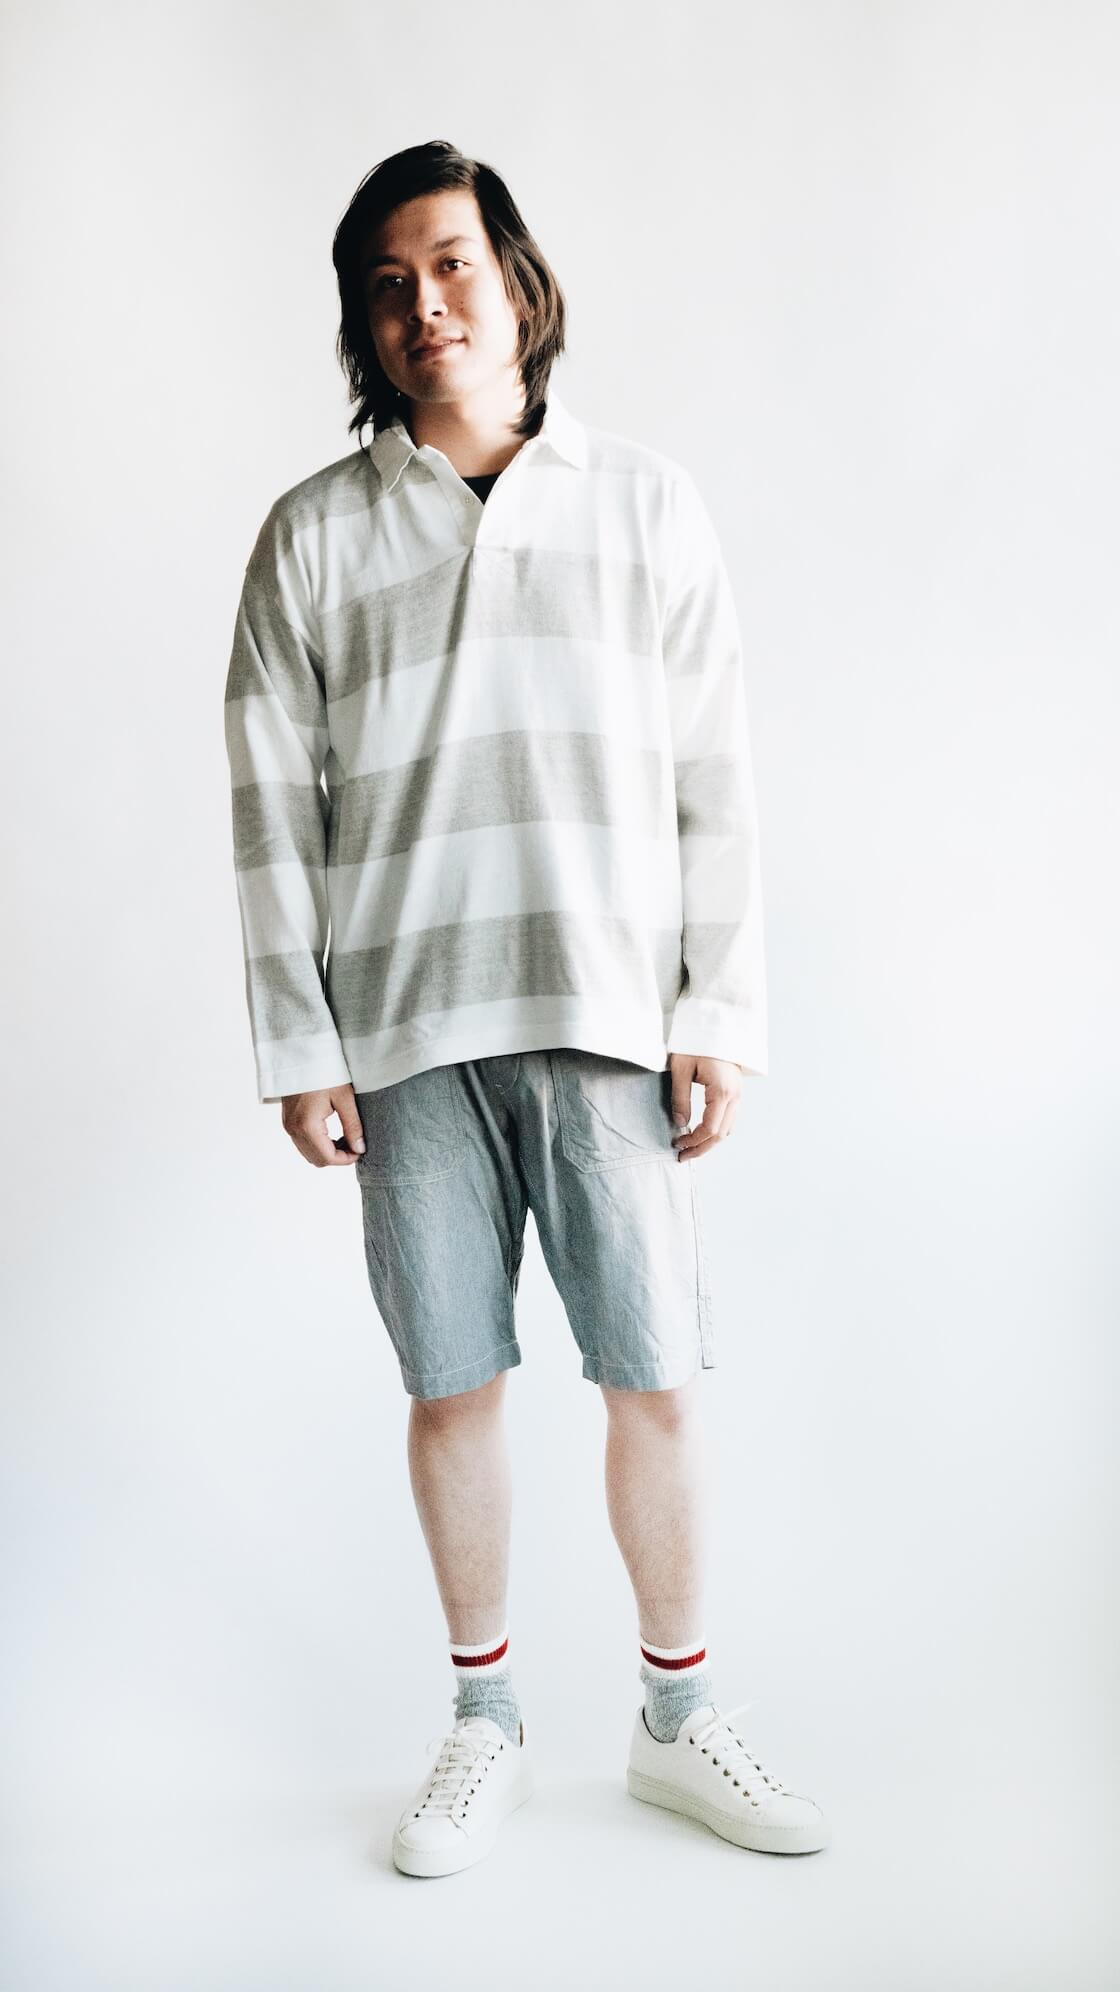 tss extra soft border stripe rugby shirt, tss slub denim fatigue shorts, anonymousIsm 3 line slub socks and buttero classic sneakers on body